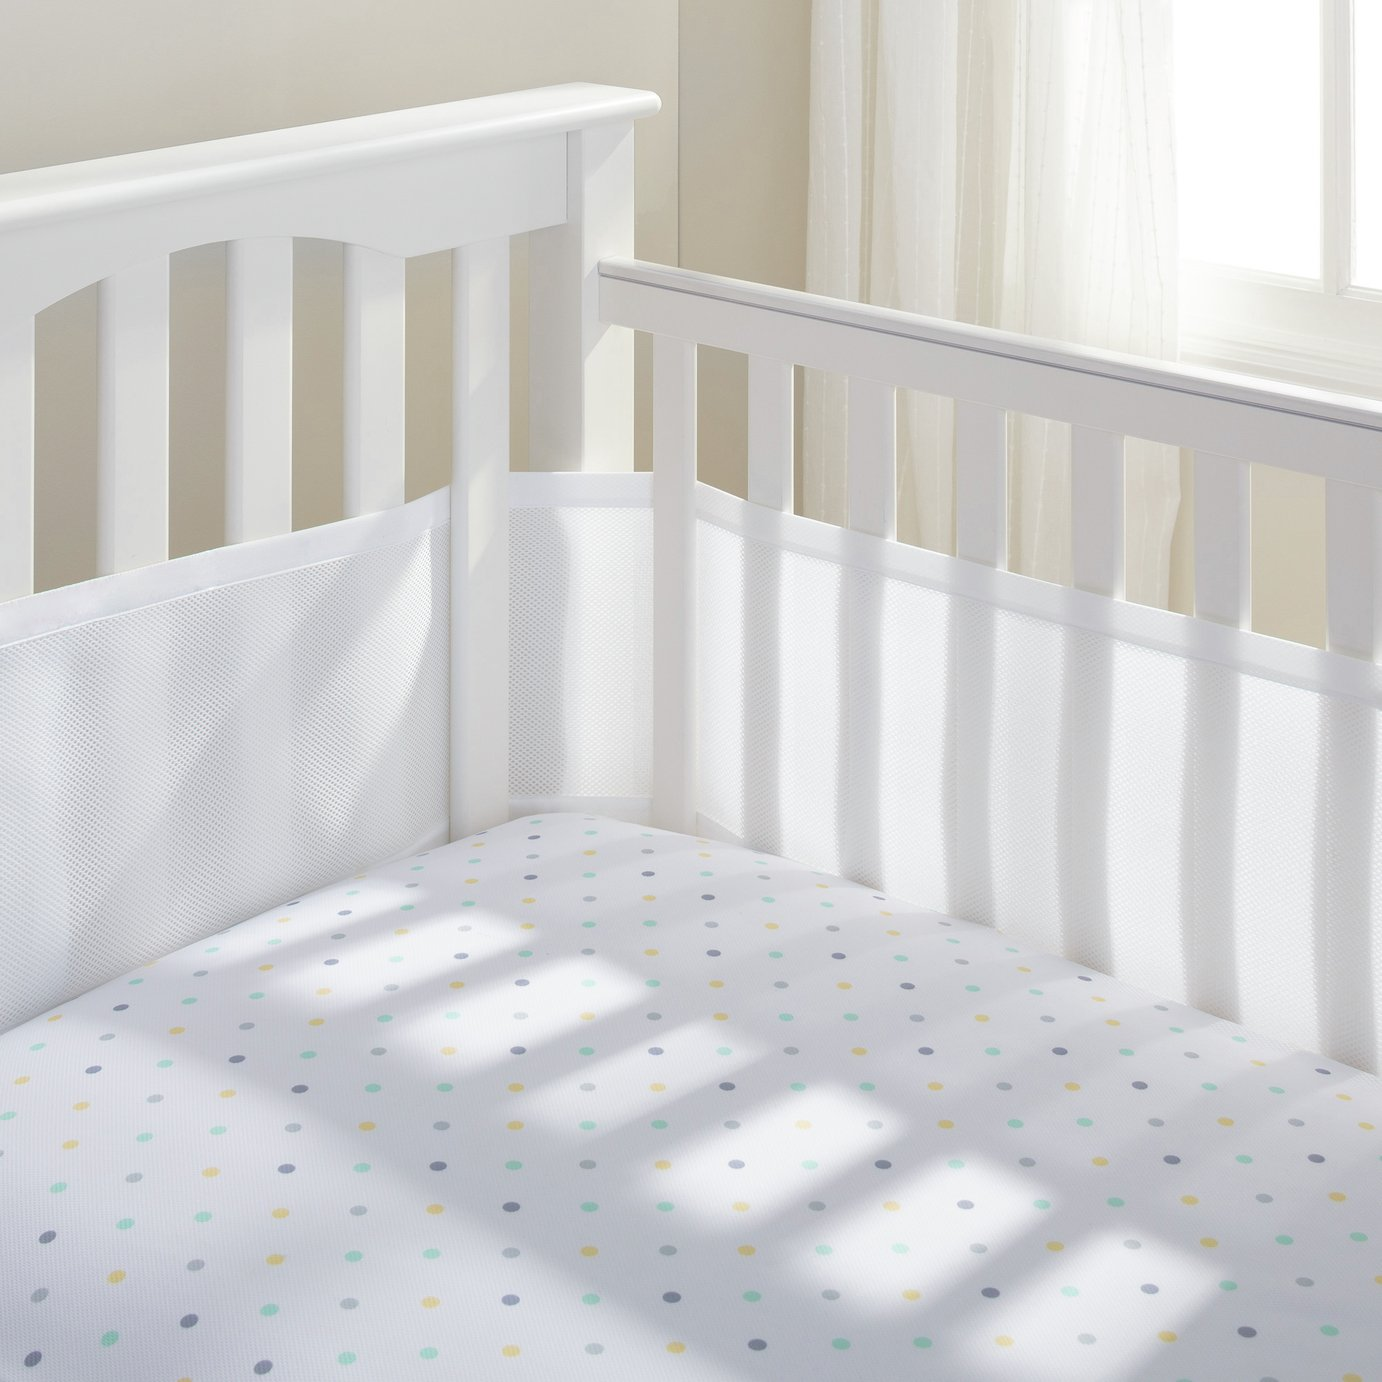 Image of BreathableBaby - 4 Sided - Cot Liner - White Mist